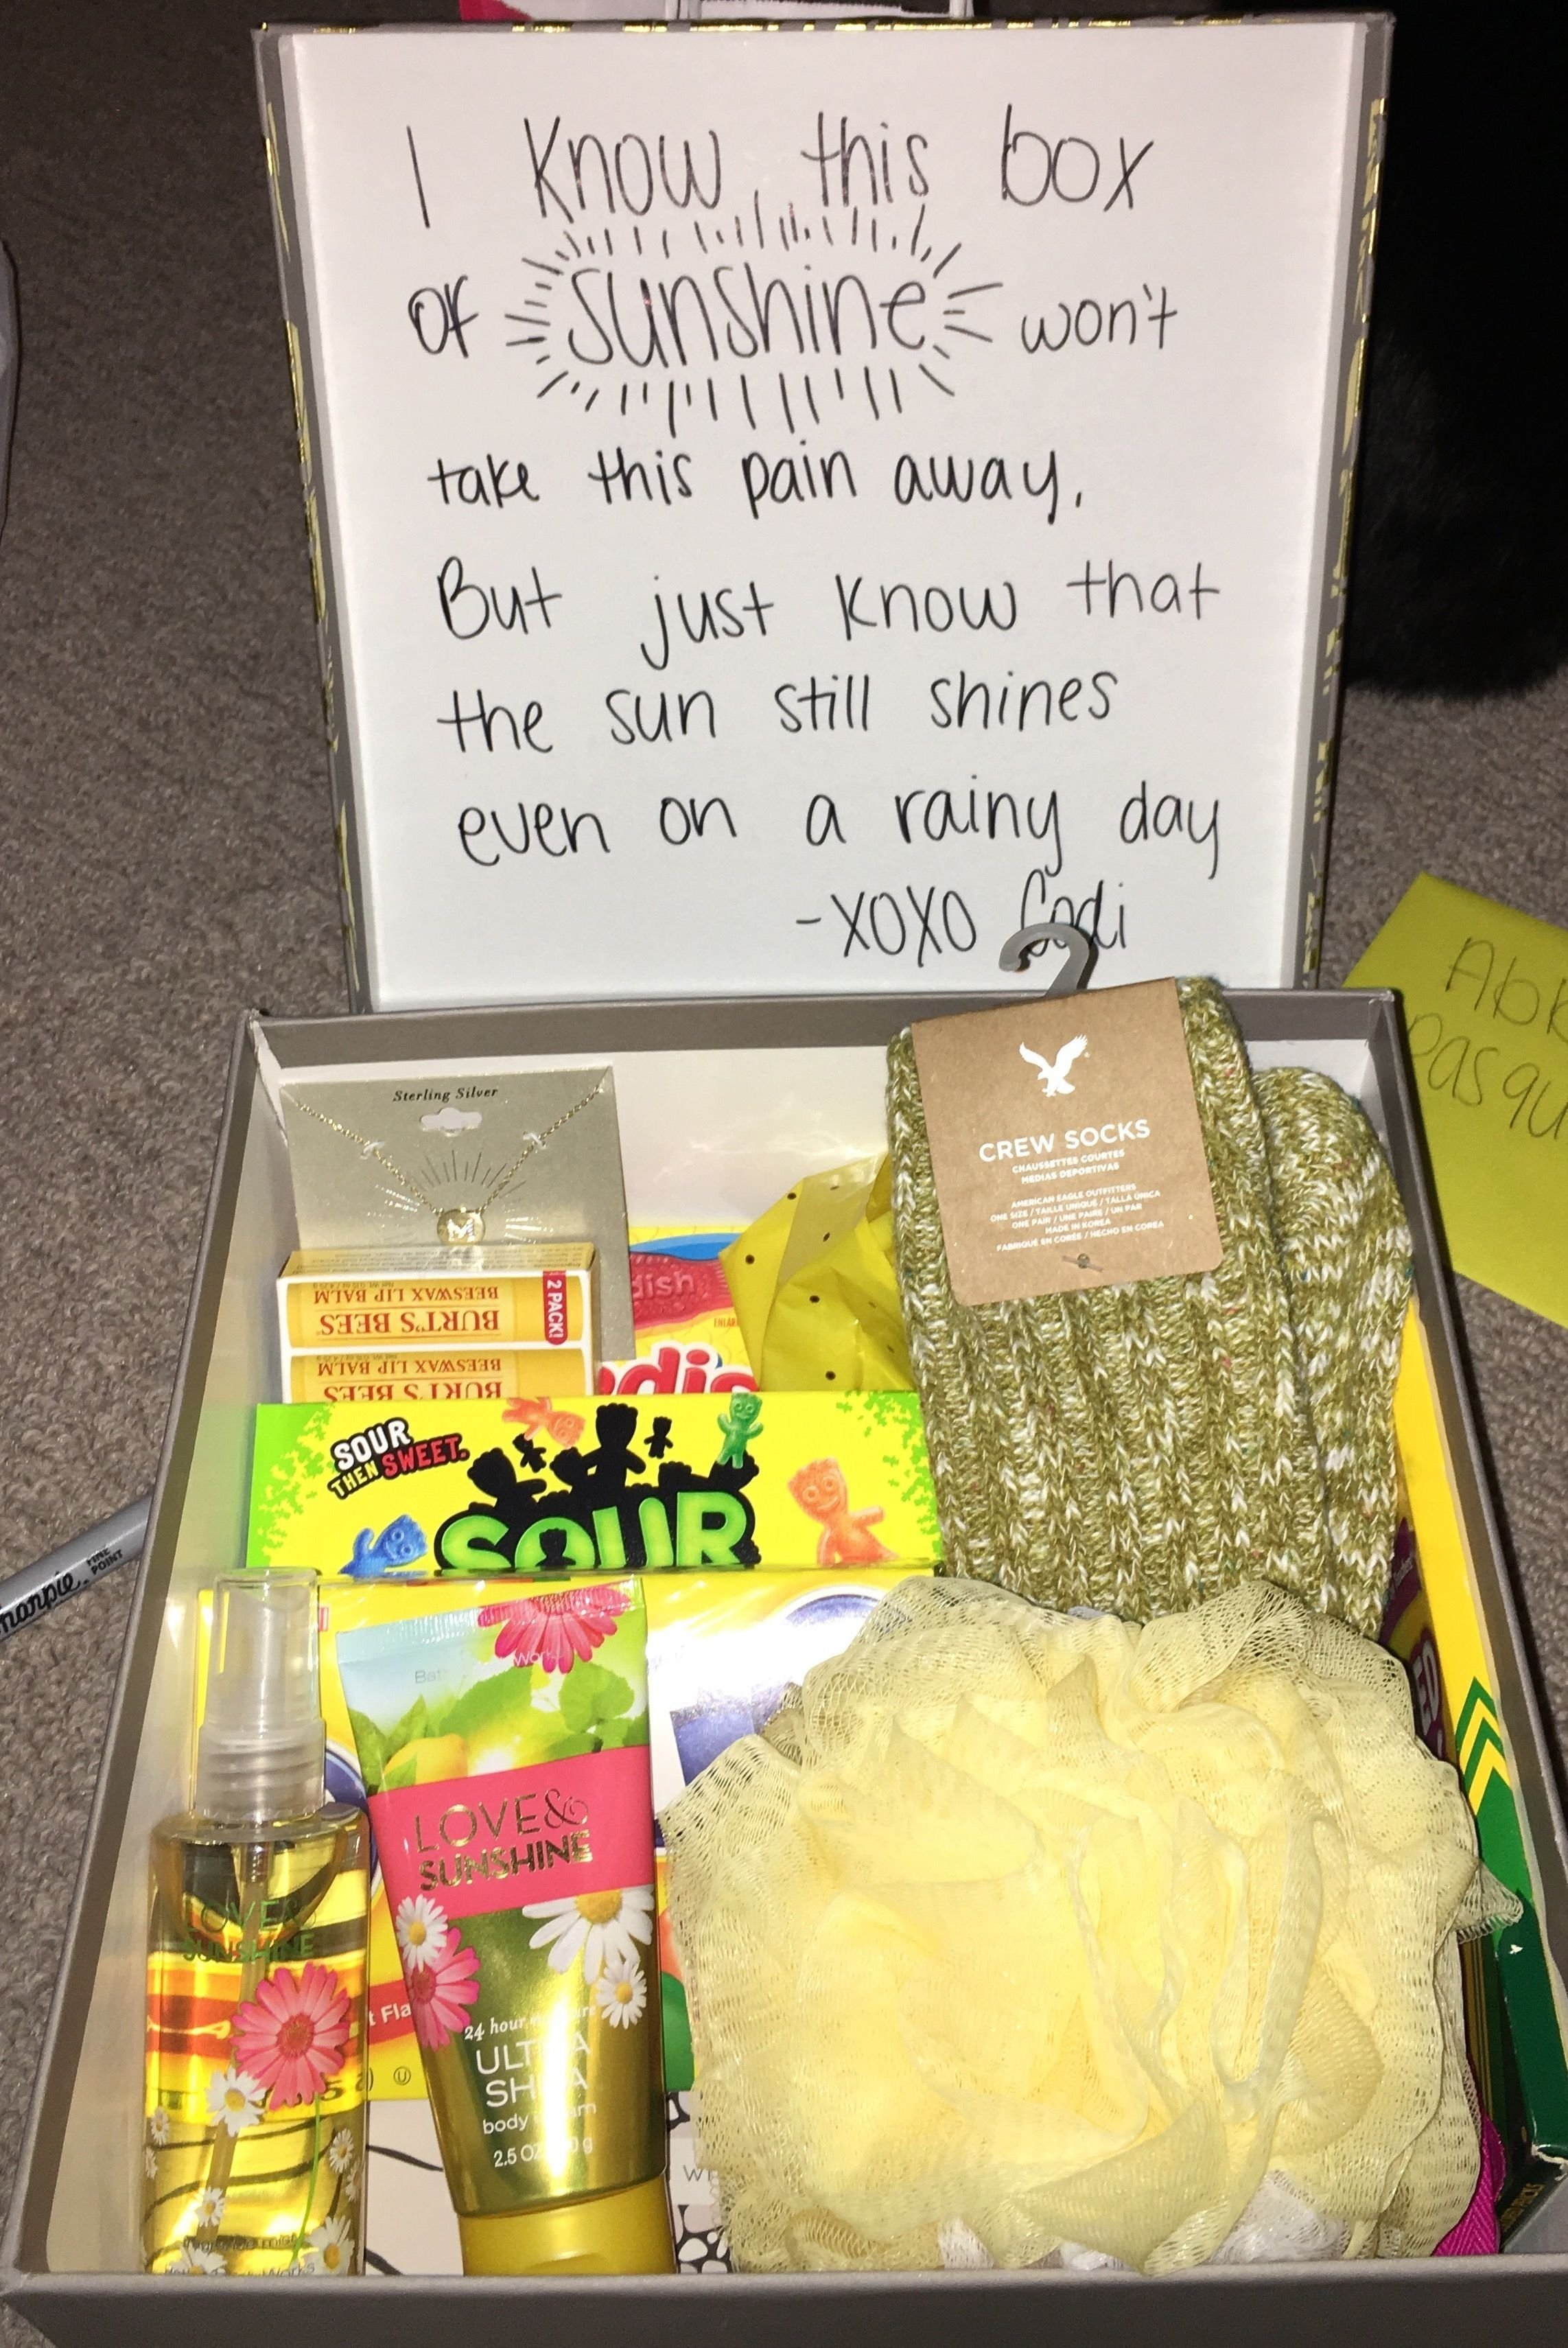 10 Amazing Birthday Ideas For A Friend care package for grieving friend good idea pinterest gift 15